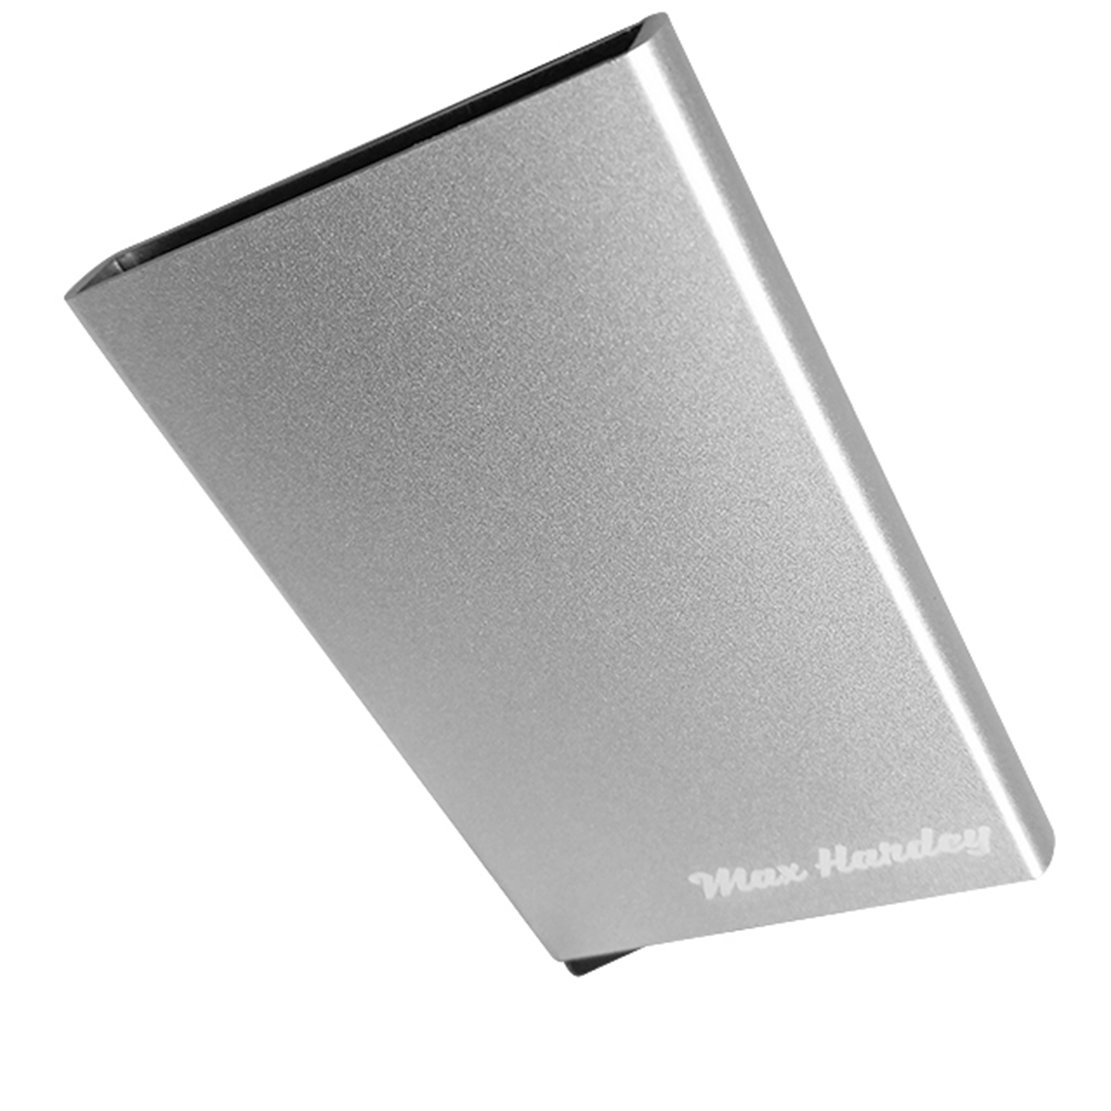 Minimalist slim RFID wallet credit card holder. Aluminium automatic pop-up wallets for men (Silver slim rfid blocking wallet)